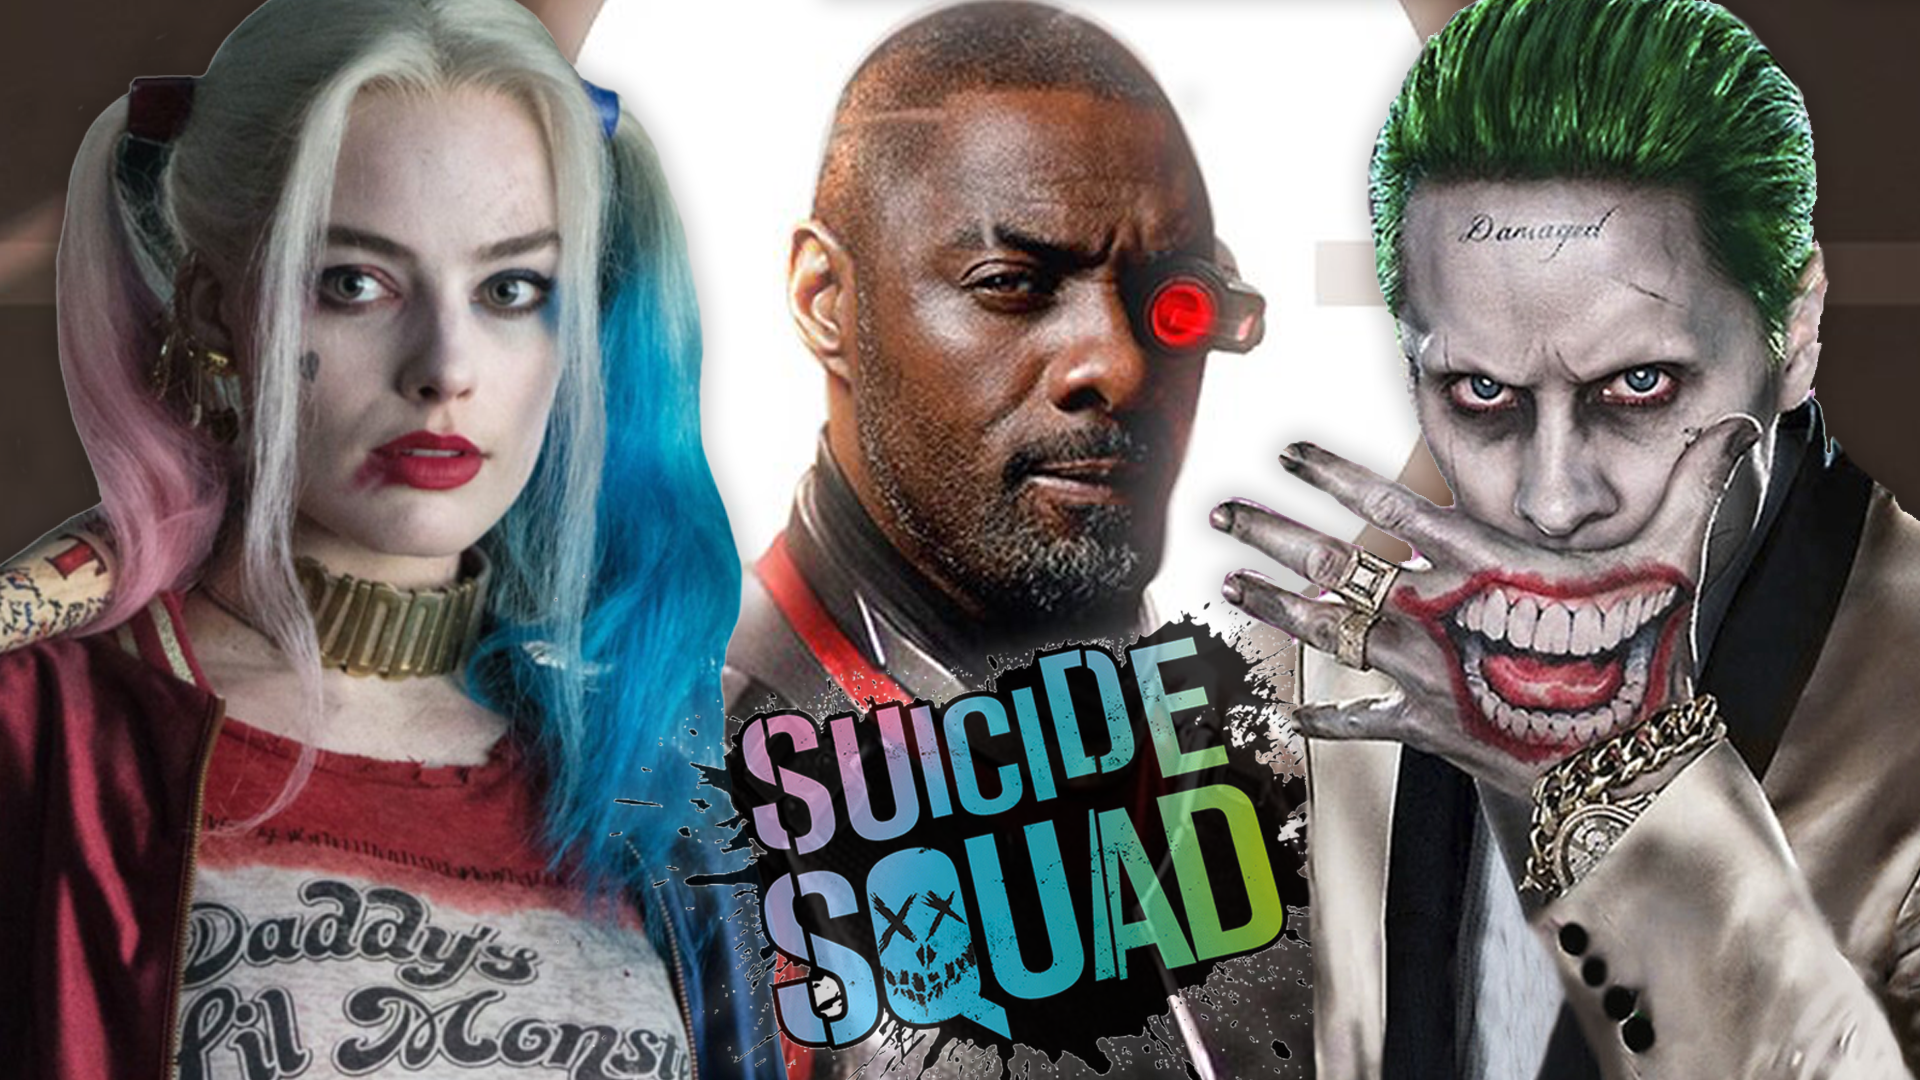 Suicide Squad 2 - Everything We Know So Far screen capture